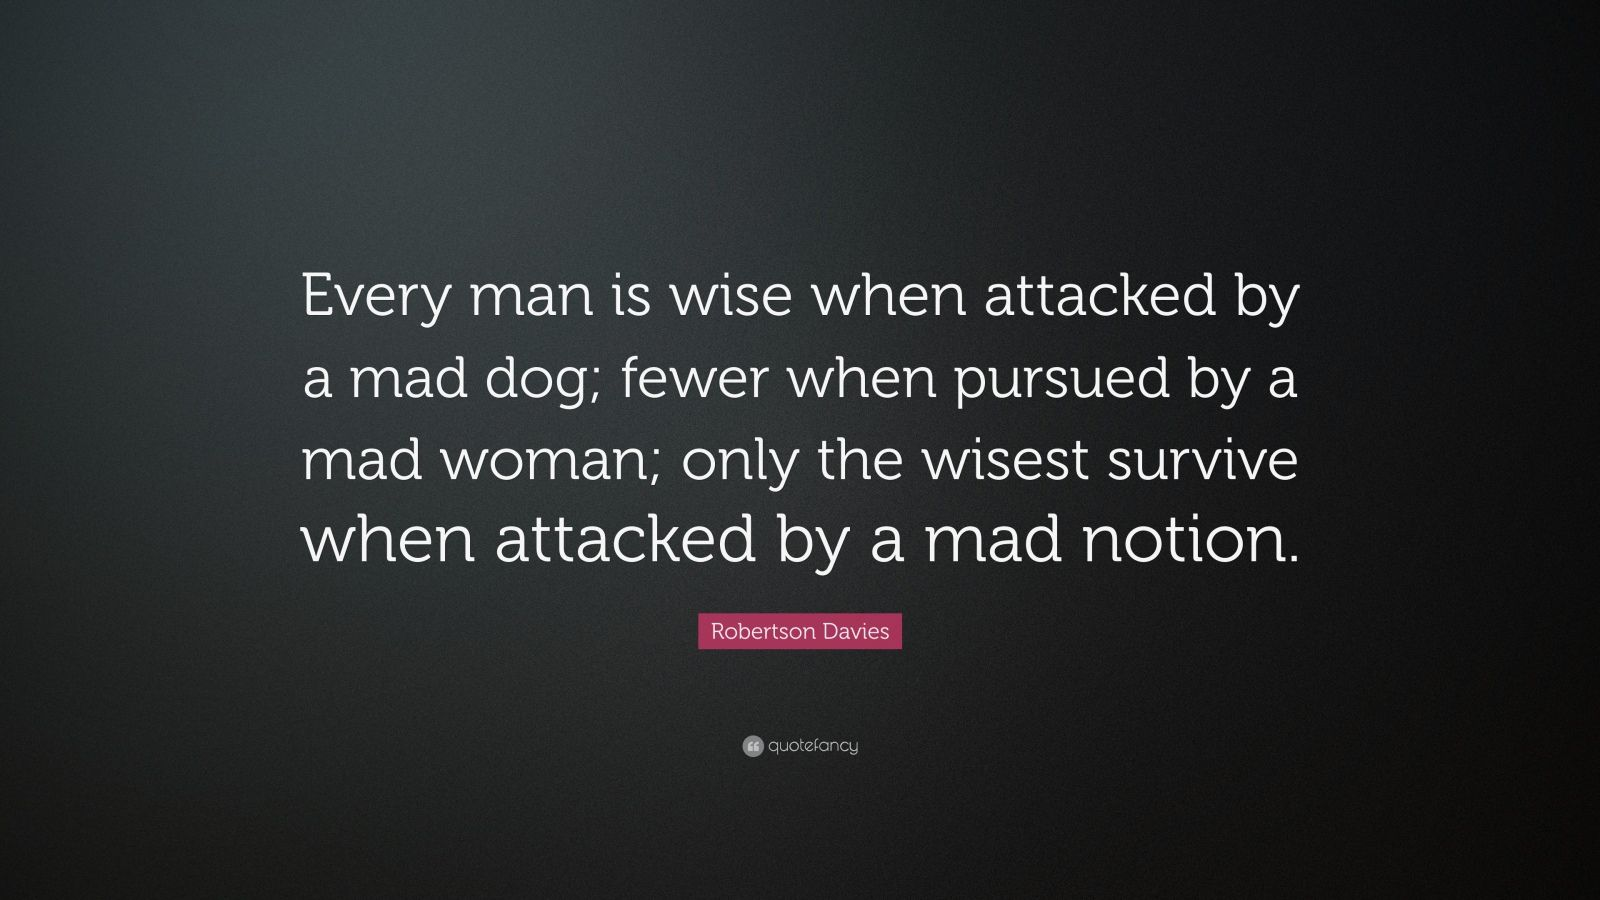 """Robertson Davies Quote: """"Every man is wise when attacked by a mad dog; fewer when pursued by a mad woman; only the wisest survive when attacked by a mad notion."""""""